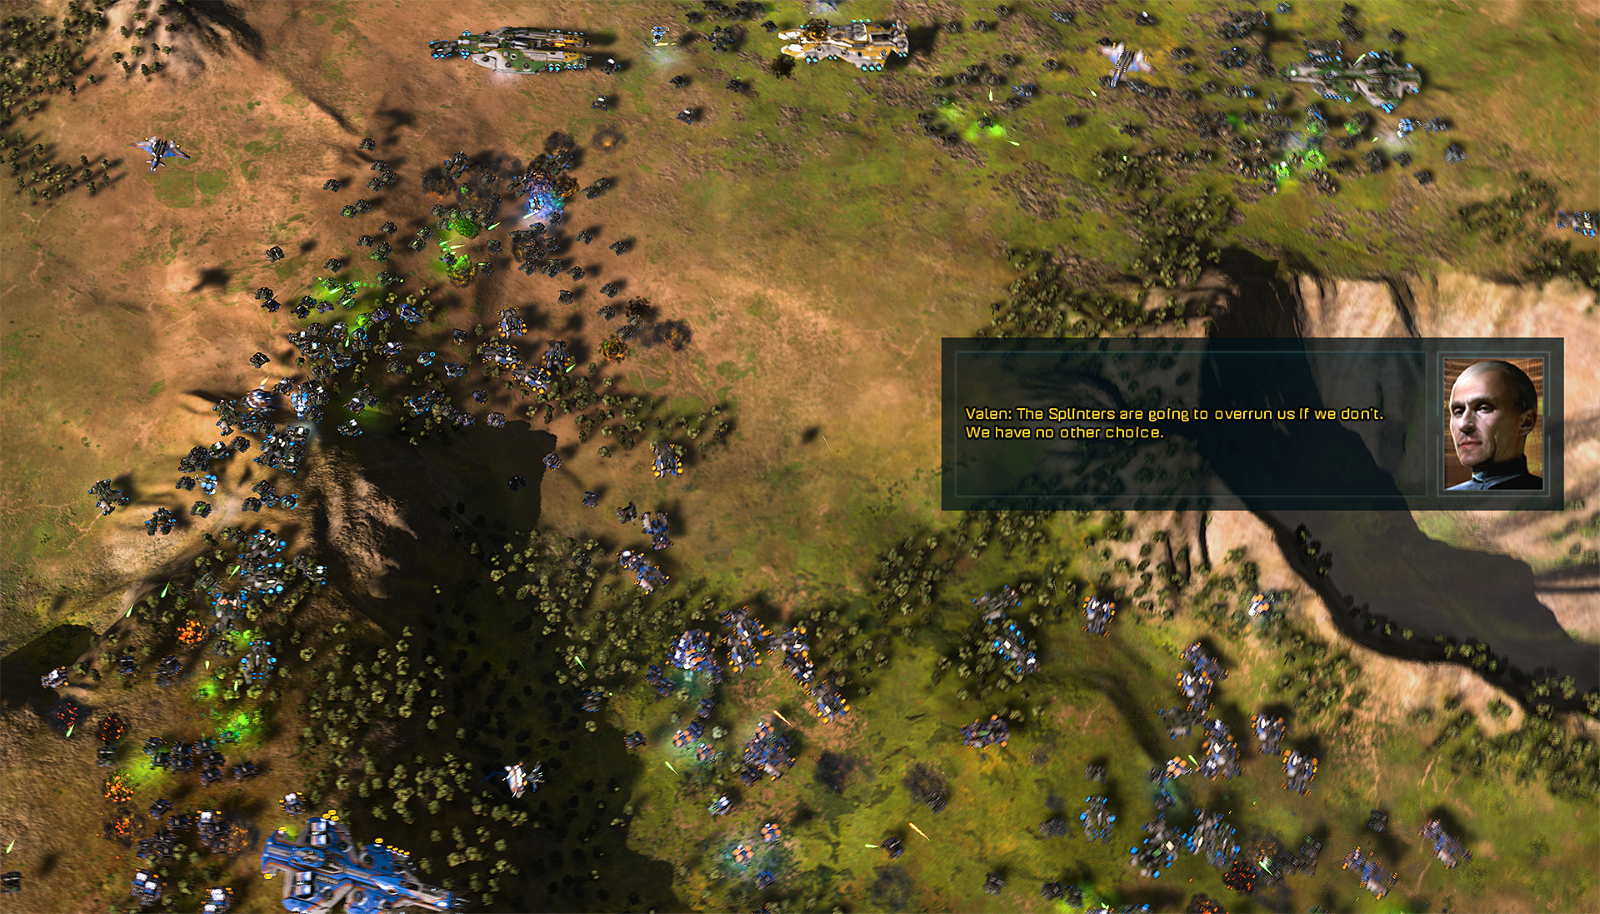 Ashes of the Singularity v1.2 adds Newly Enhanced Campaign